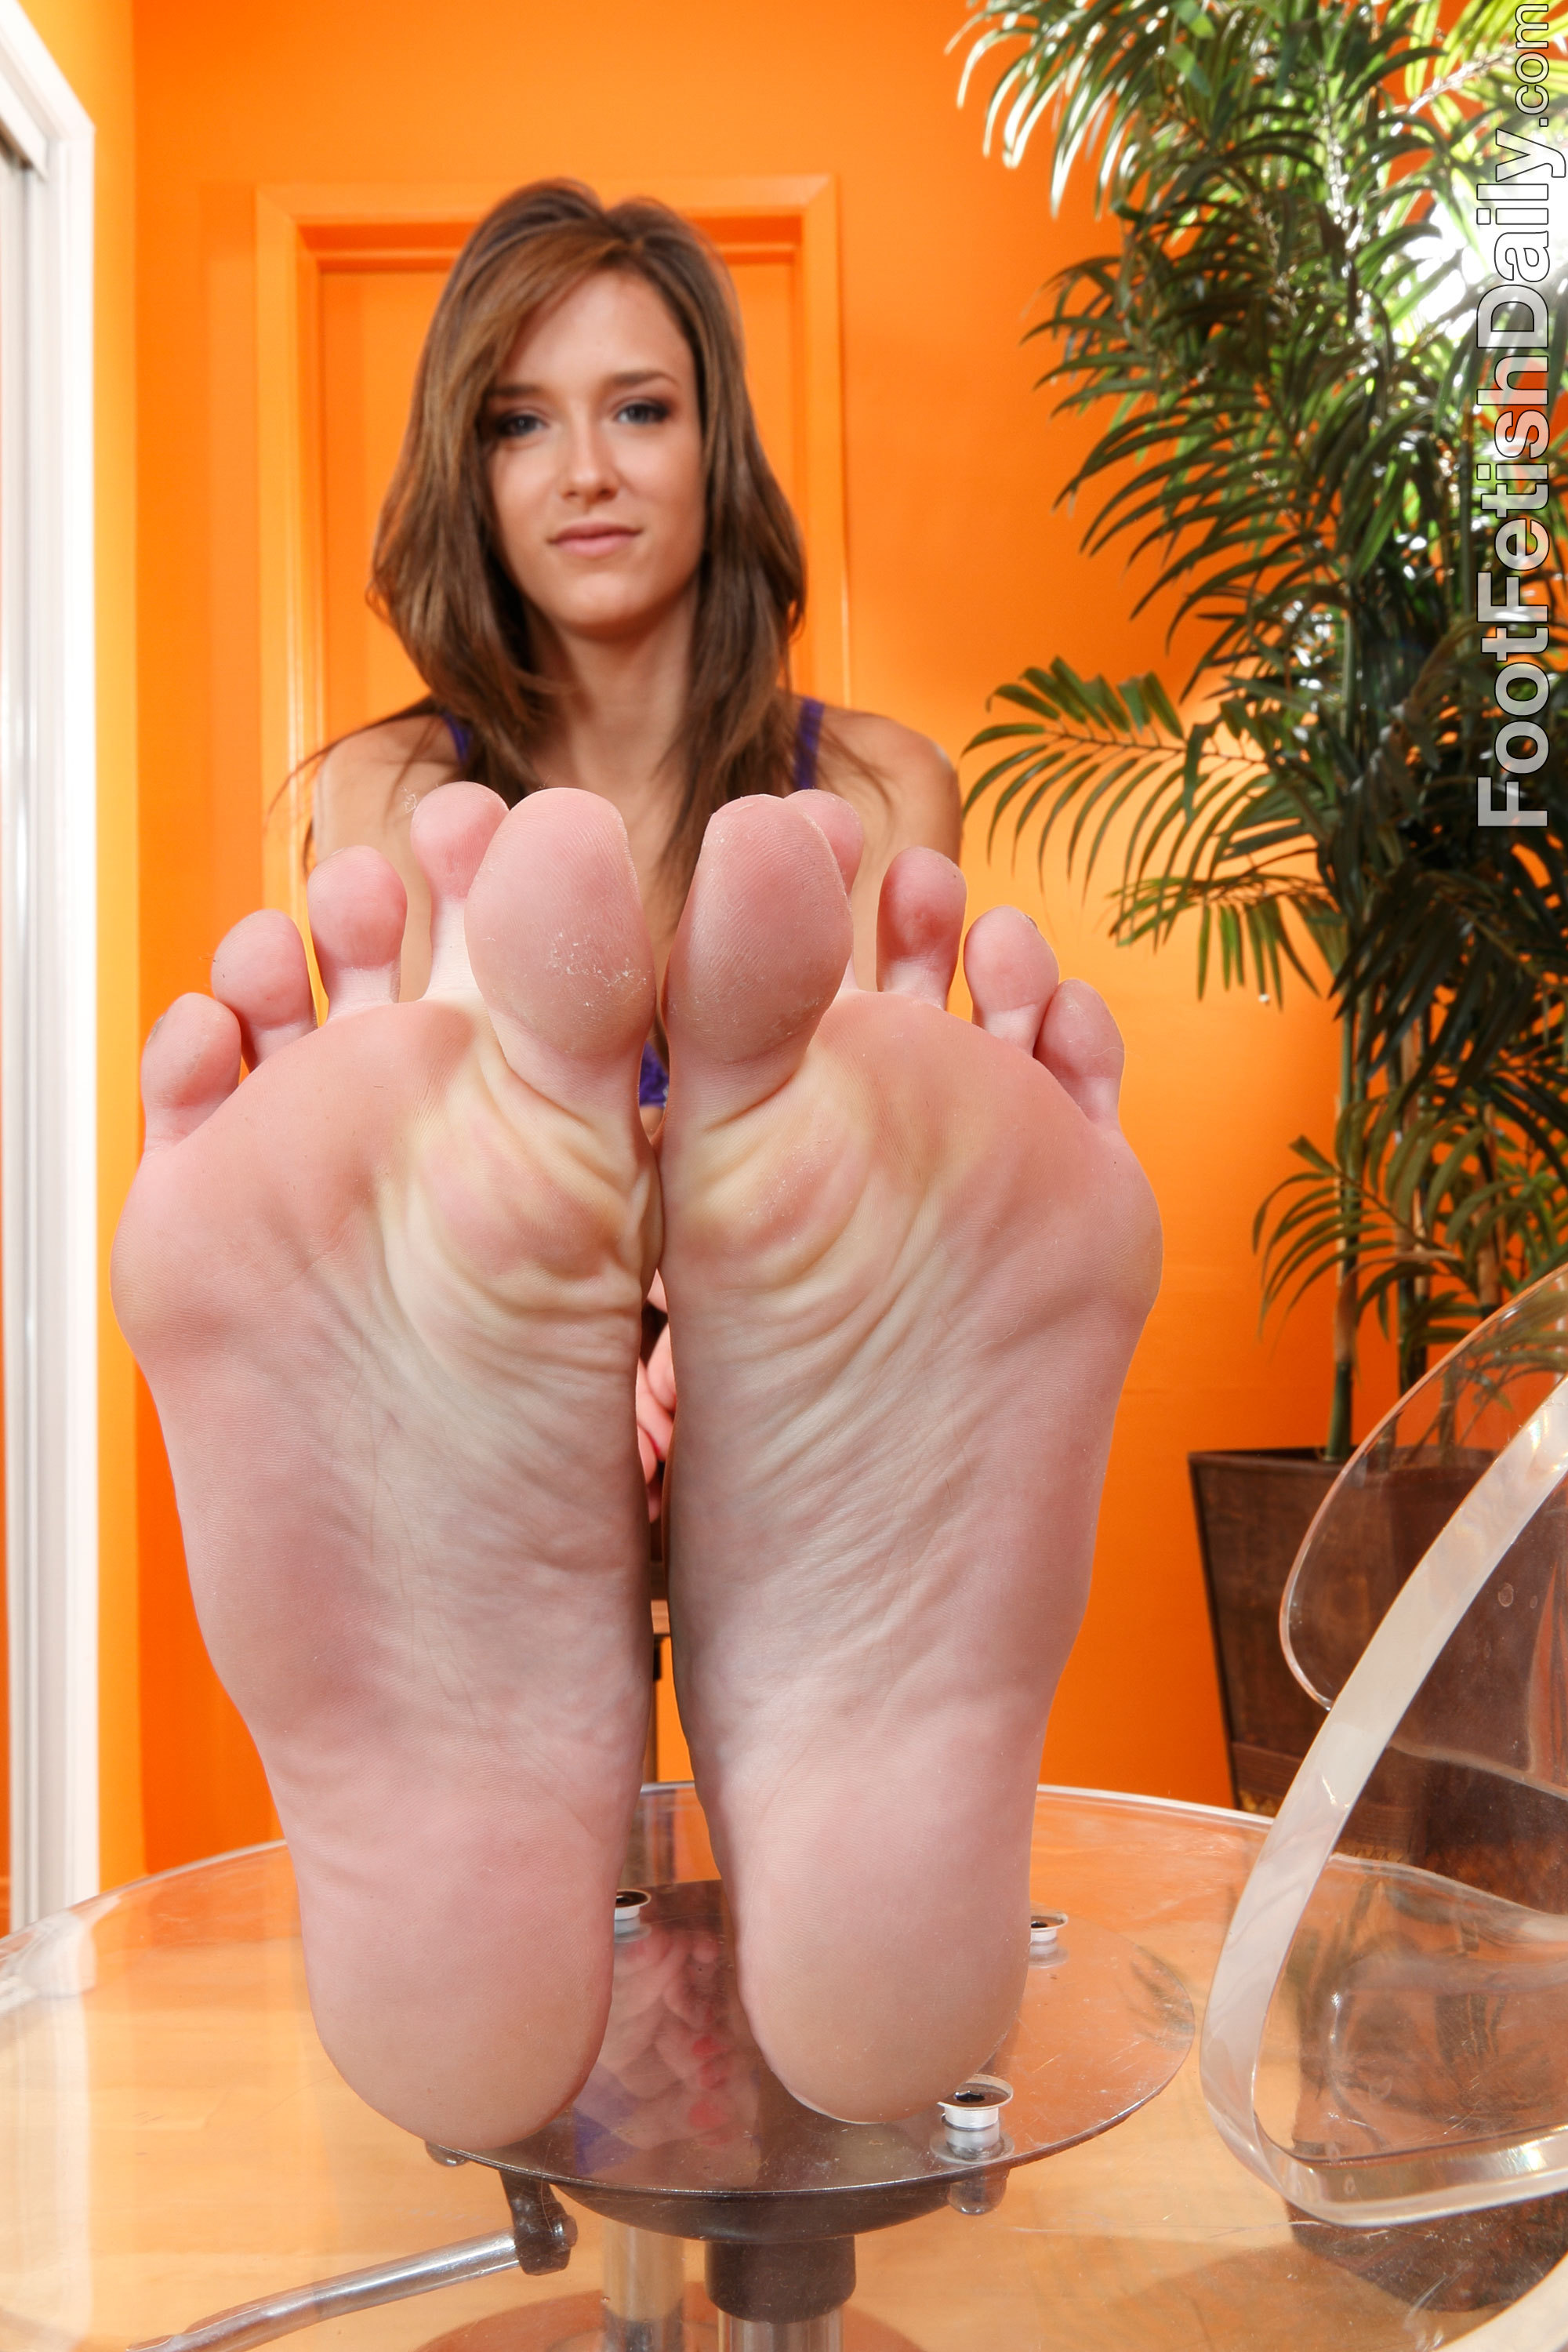 malena morgan height